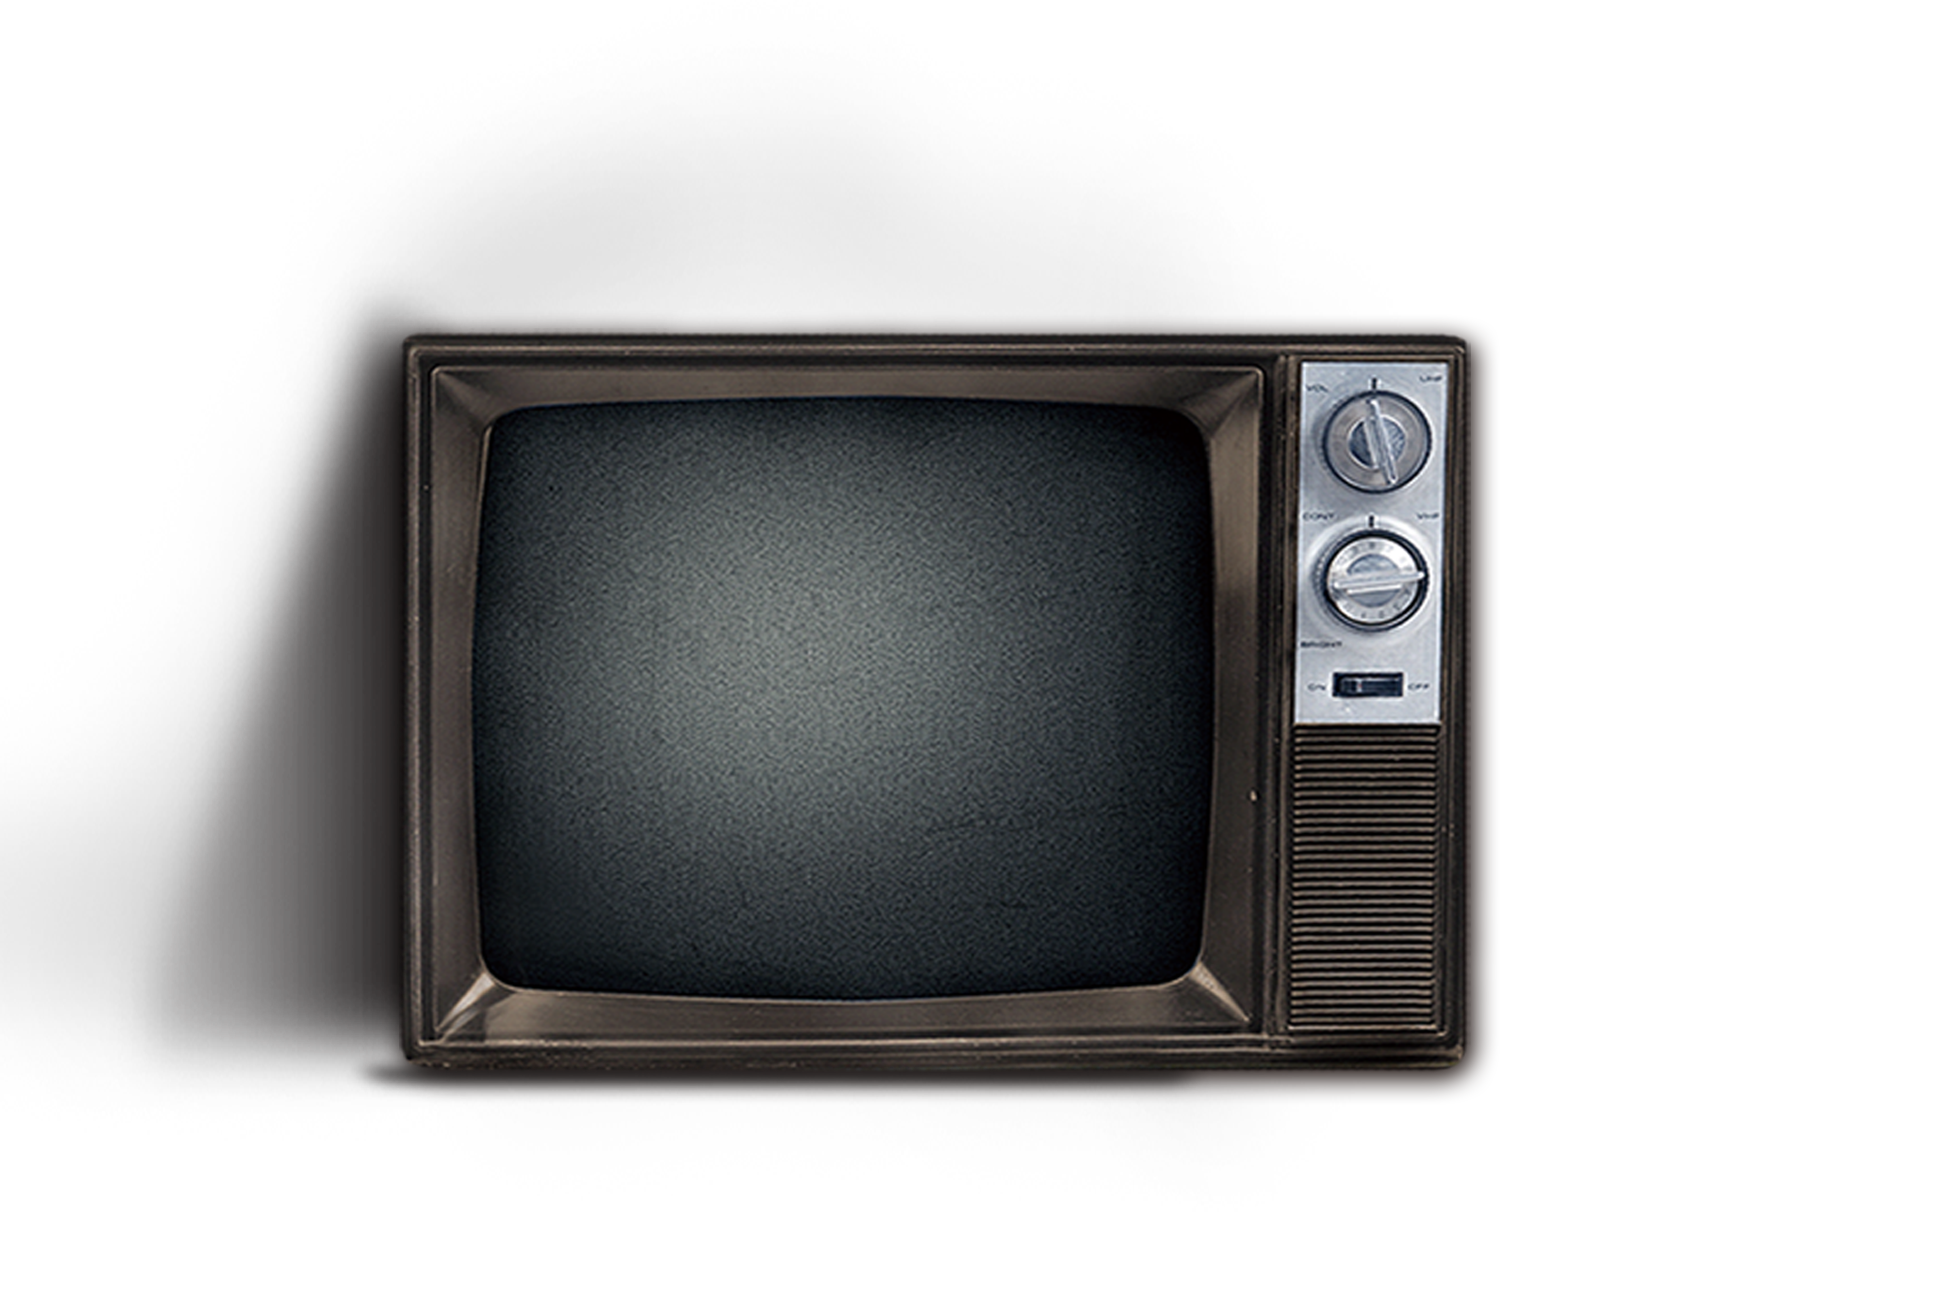 Old tv screen png. Television set transprent free